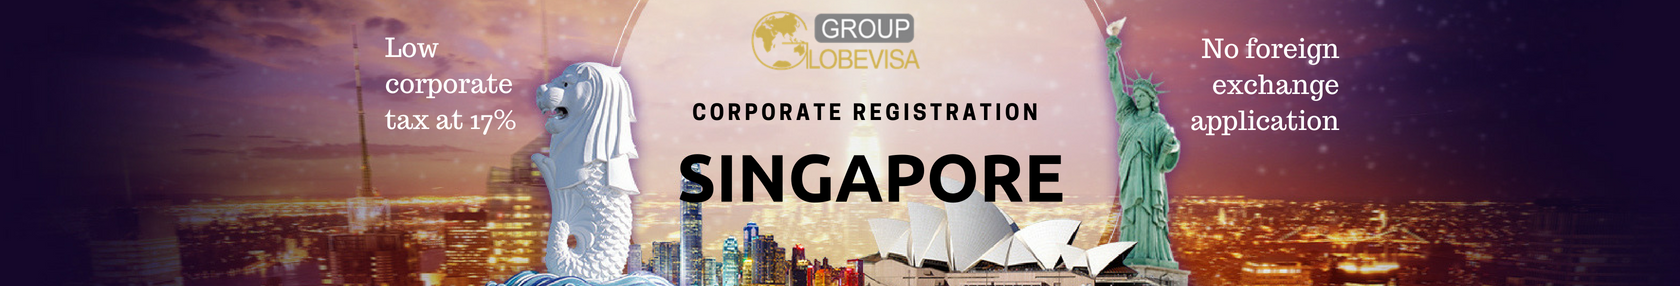 Singapore Corporate Registration